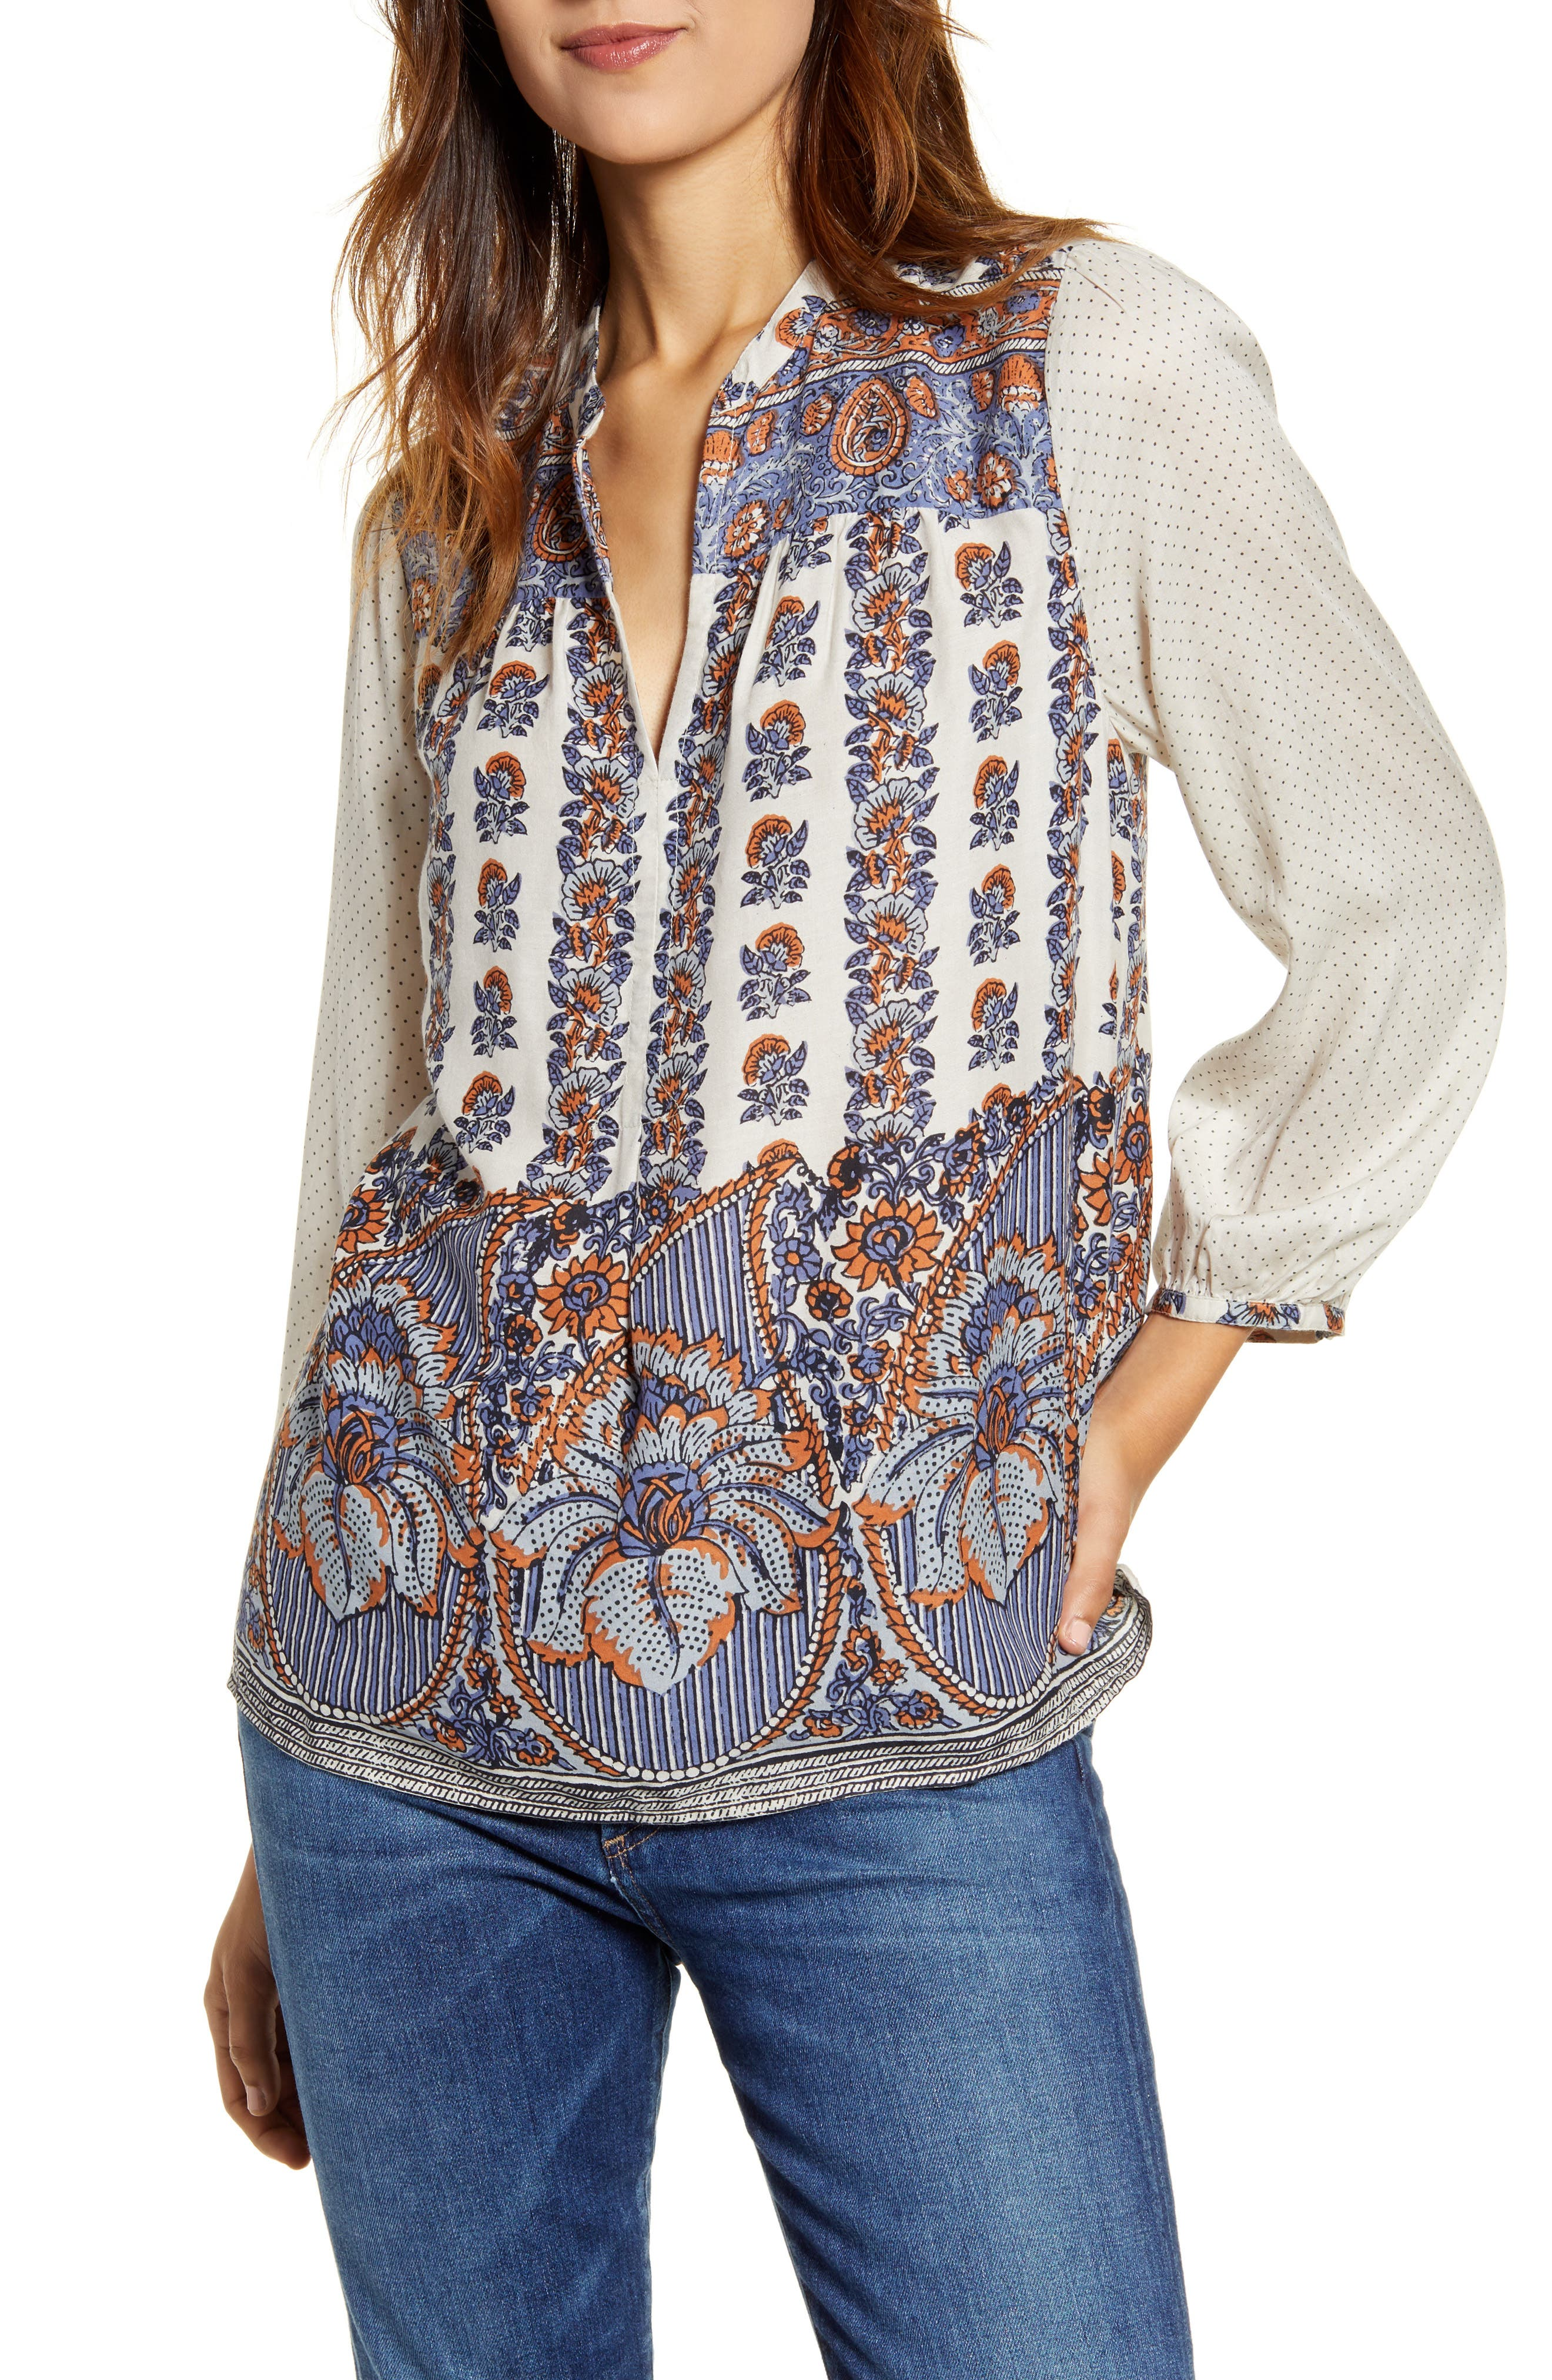 Women's 70s Shirts, Blouses, Hippie Tops Womens Lucky Brand Rami Peasant Top $99.00 AT vintagedancer.com